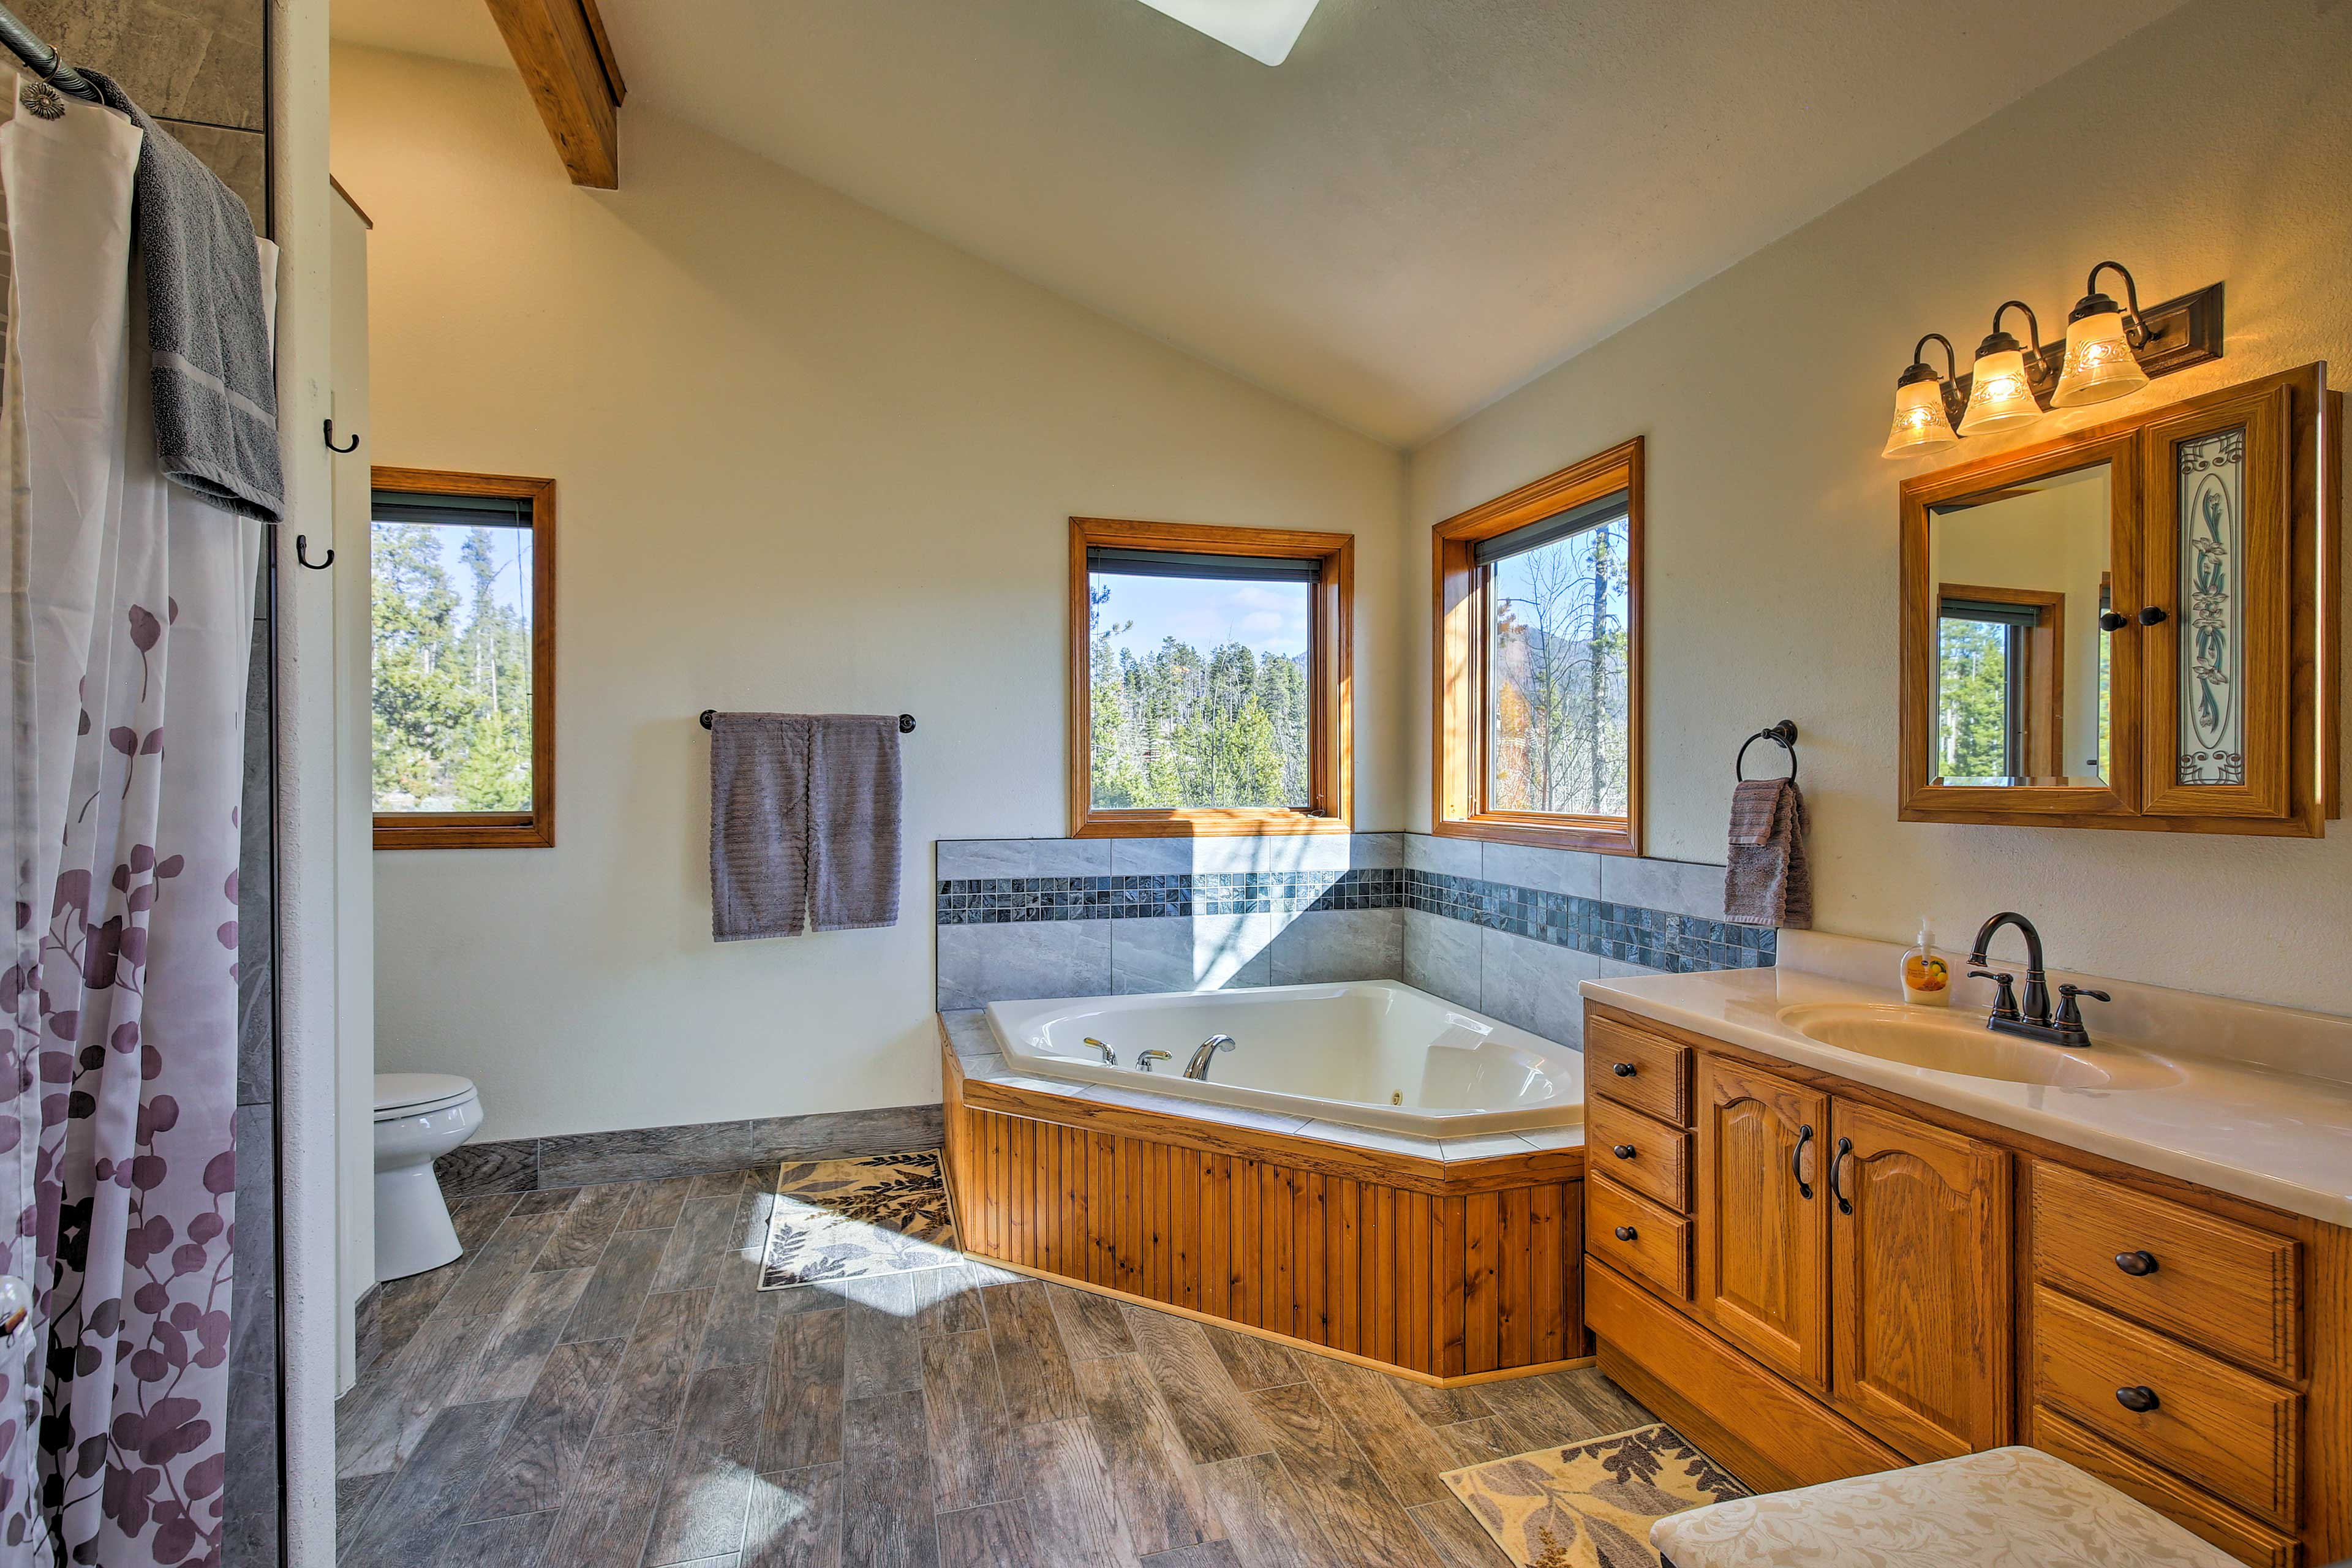 Treat yourself to a long soak in the Jacuzzi tub!